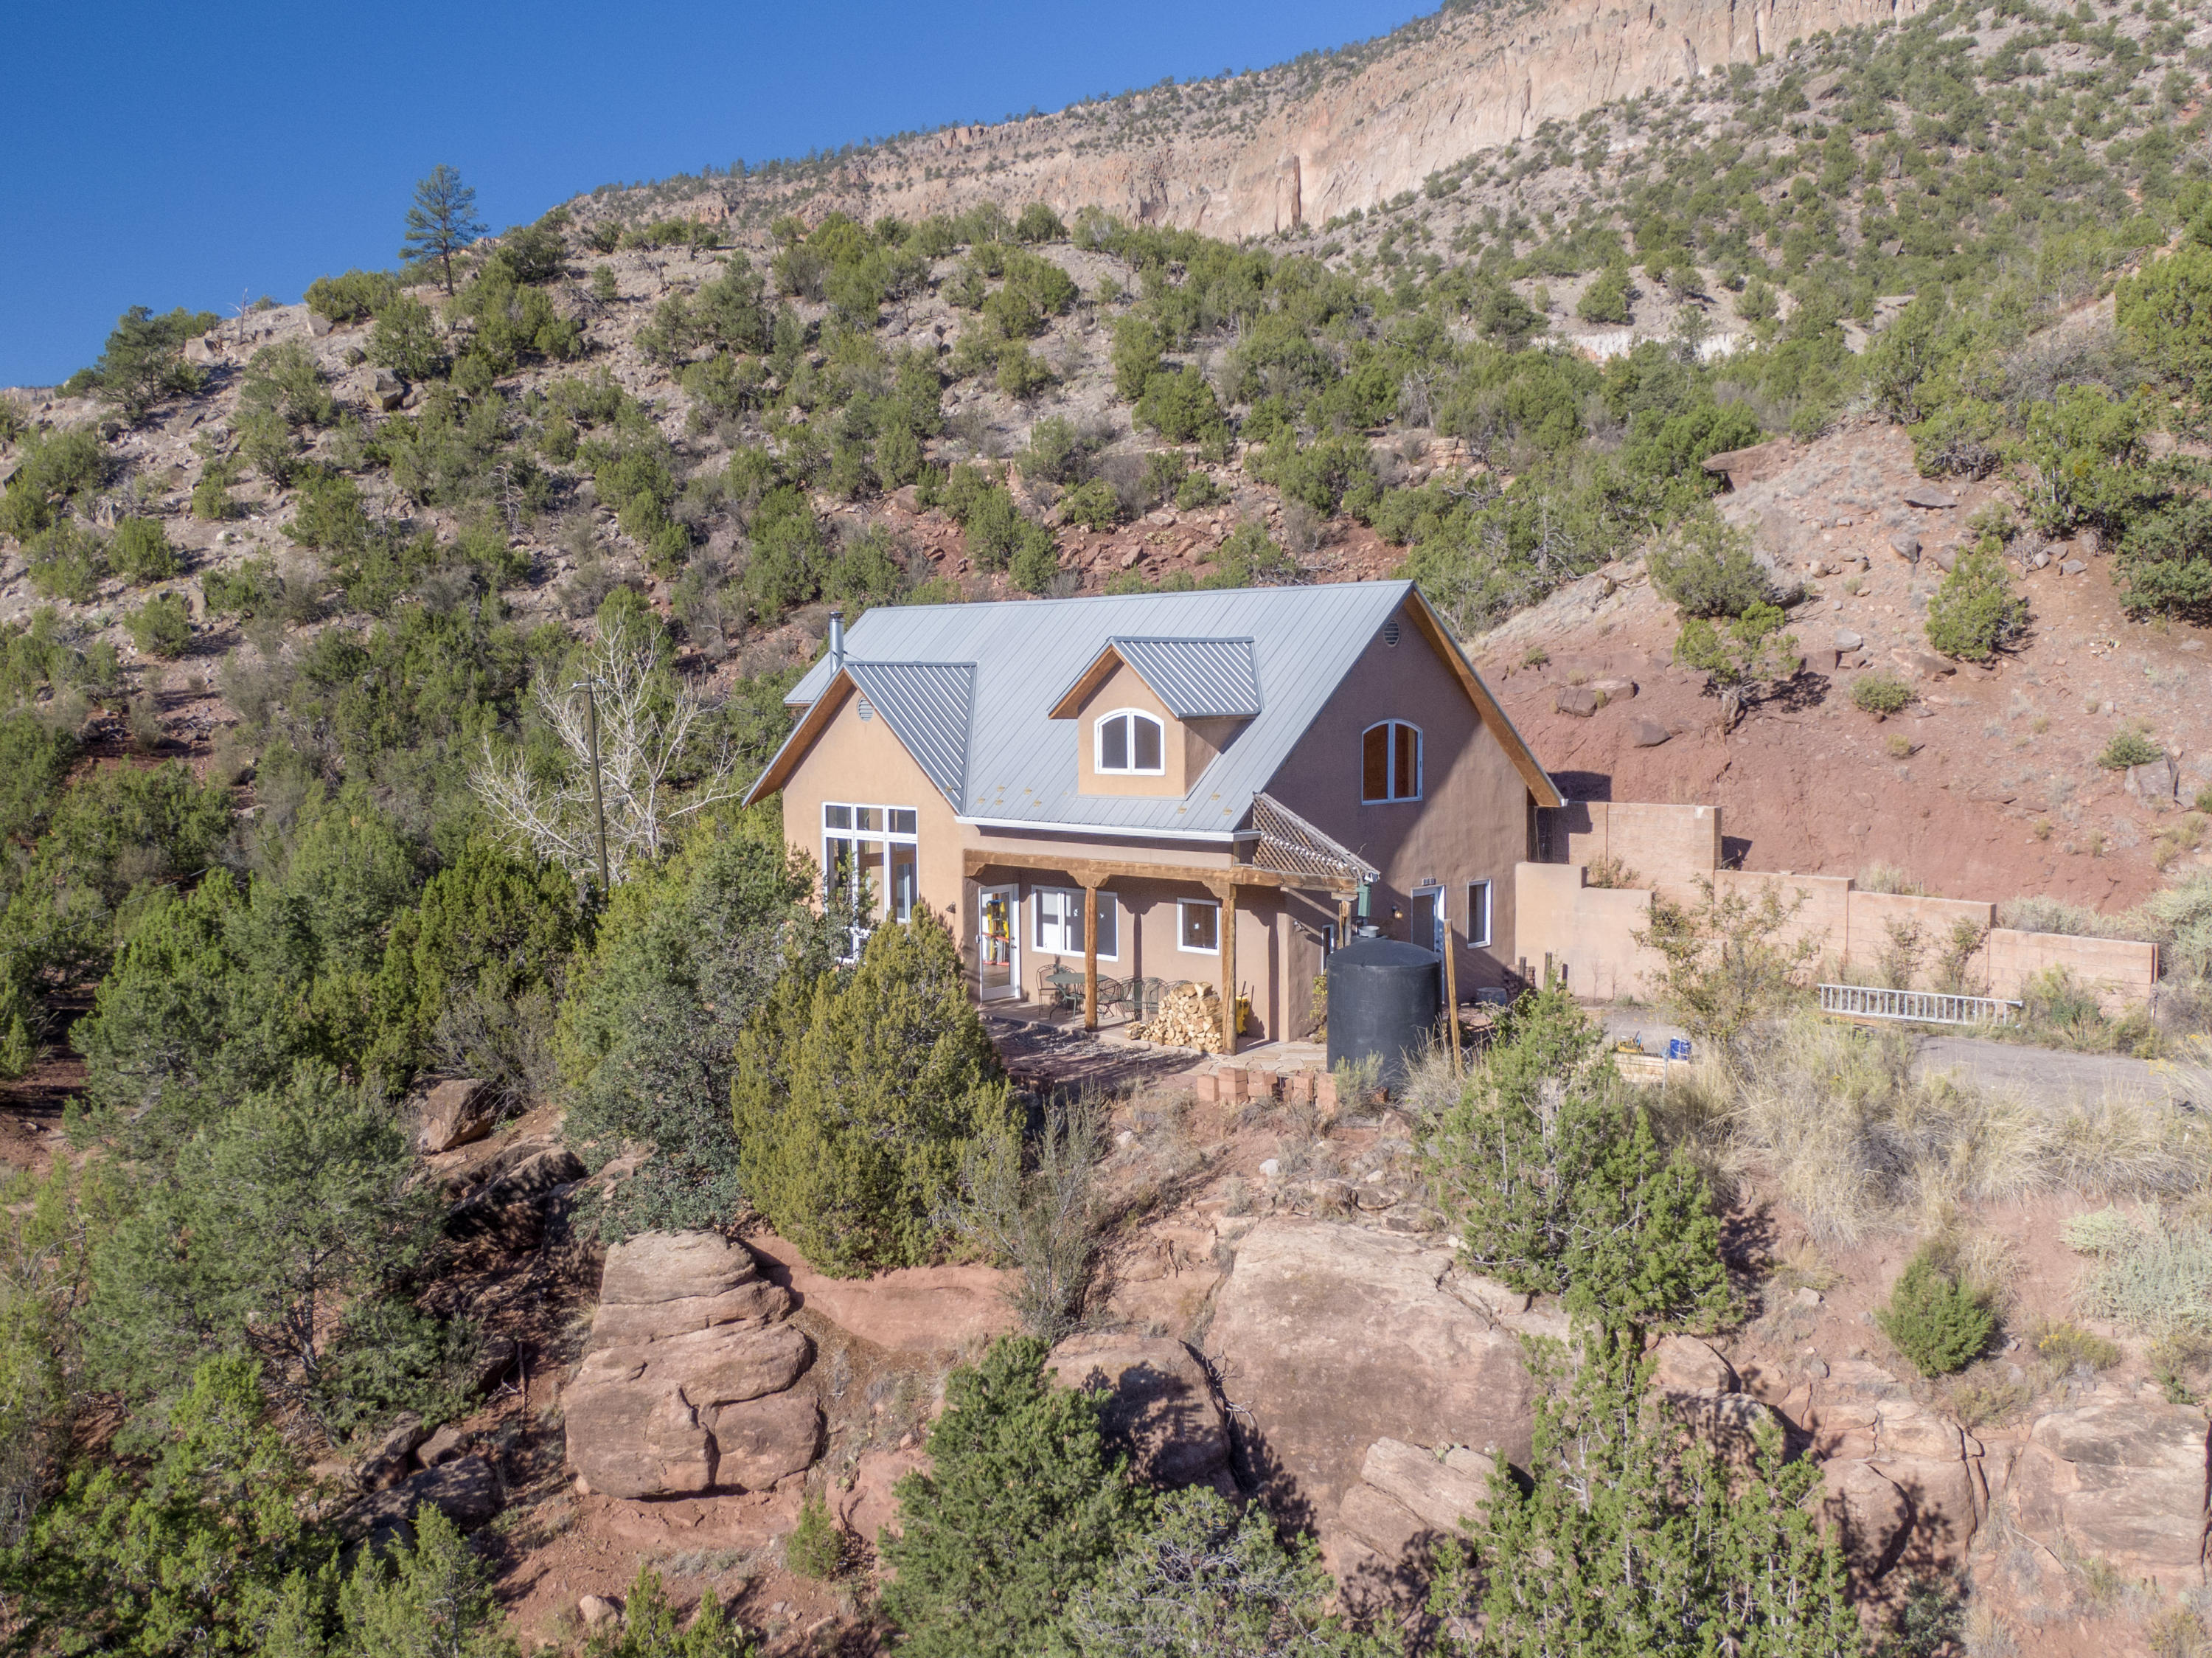 60 SIERRA Court Property Photo - Jemez Springs, NM real estate listing